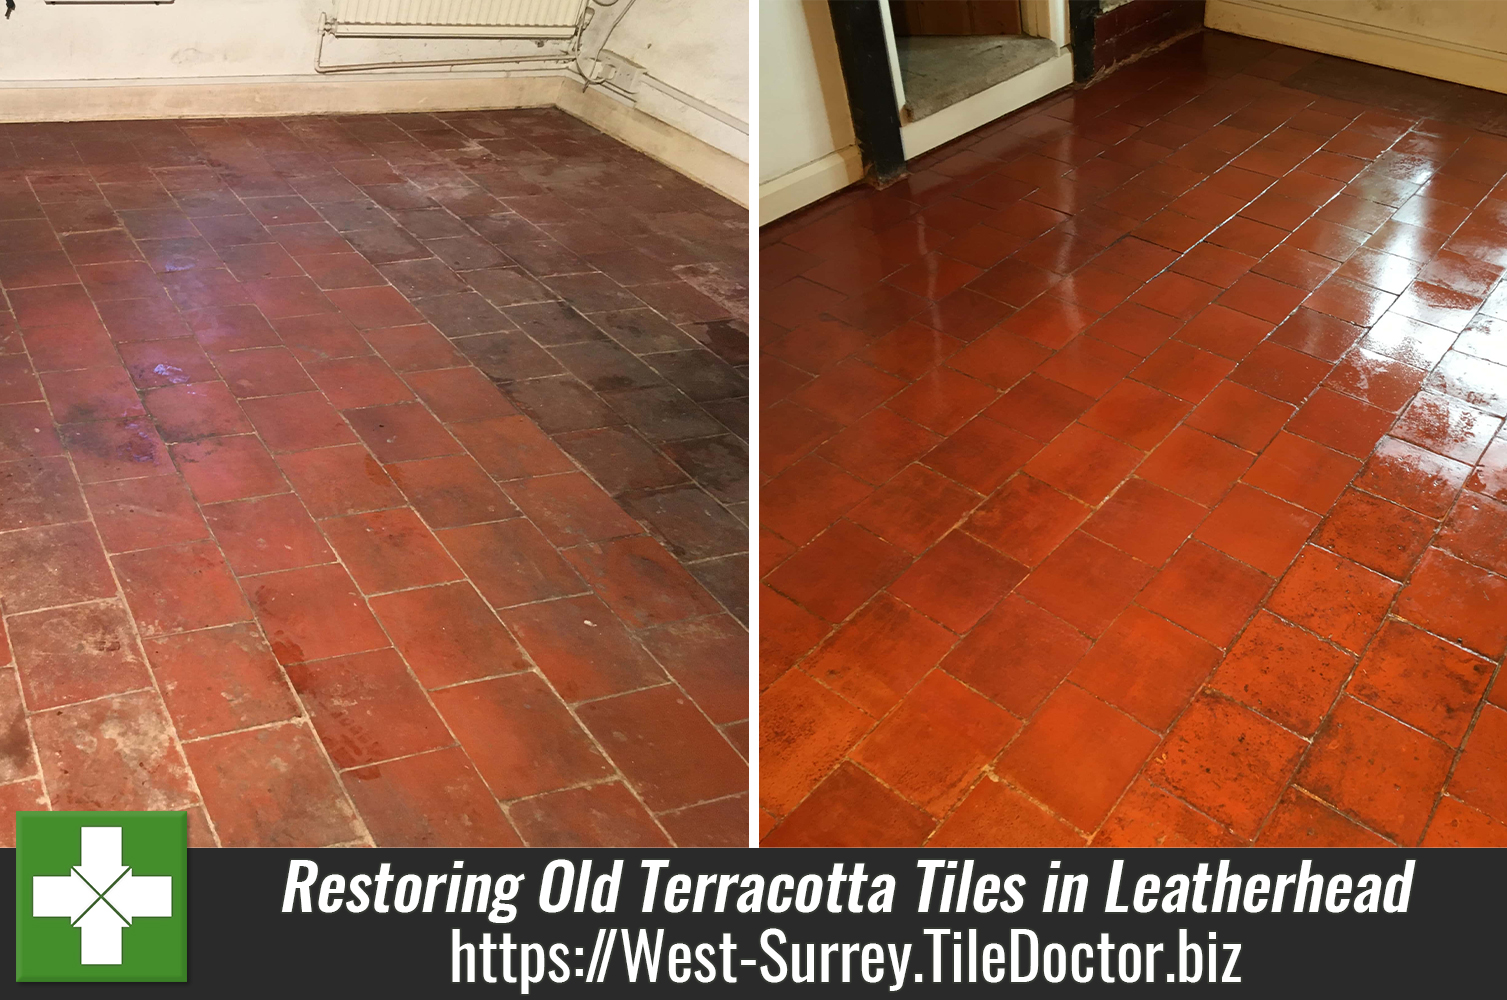 Terracotta Floor Restored at 400-Year-Old Cottage in Leatherhead